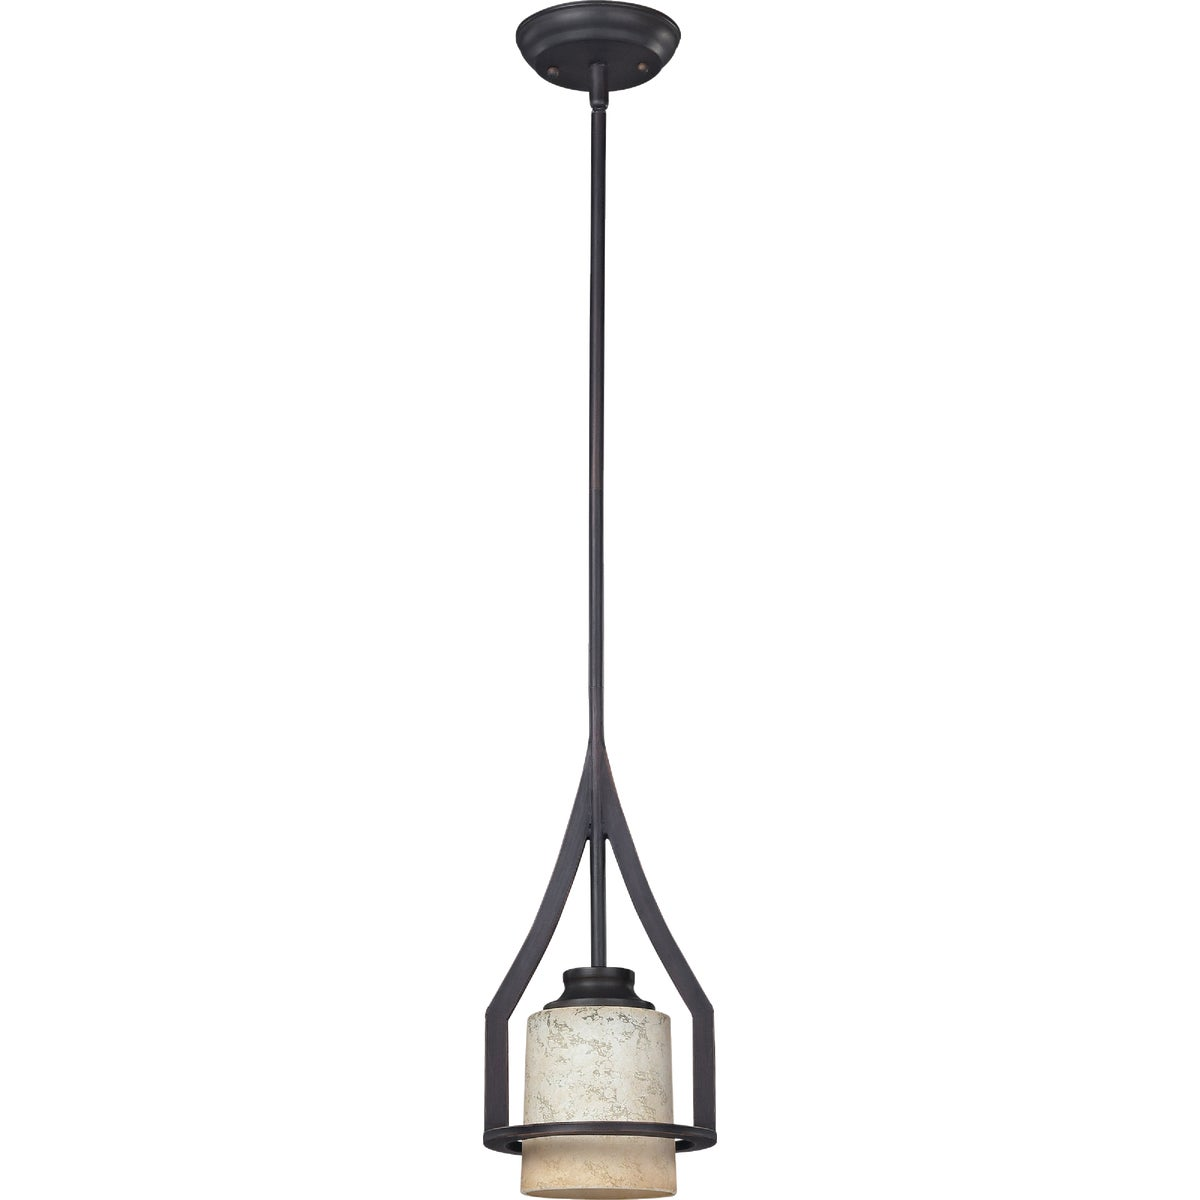 MINI PENDANT ANTIQUE - 1PL375A01RA by Canarm Gs